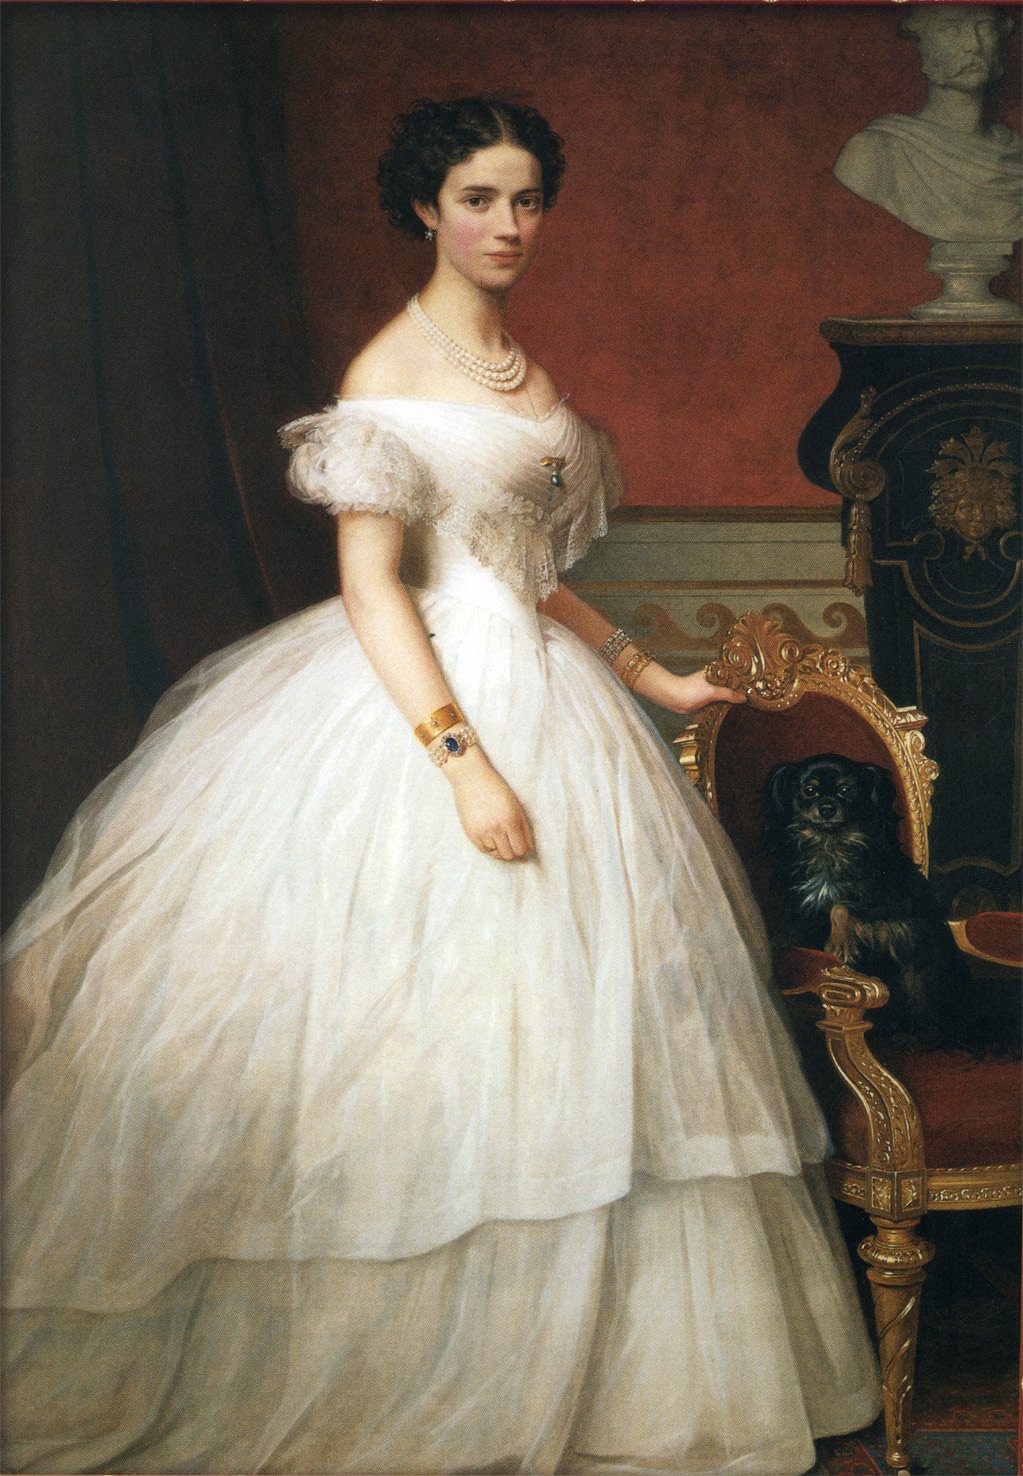 Our girl Dagmar of Denmark is modeling a beautiful example of mid 19th-century fashion - an extreme hourglass shape created by a corset, a bell-shaped crinoline, and a few layers of skirt - which permeated life on both sides of the Atlantic. These skirts reached their ultimate hugeness around this time, in the 1860s. PS: the fact that she's wearing all white is a symbol of her social fineness. Most women didn't wear this much white because, in an era where everything was still mostly hand washed, it was just too much of a pain of keep nice looking.   Portrait  of  PrincessDagmar of Denmark with her Dog,   by A. Hunæus. (Wikicommons)